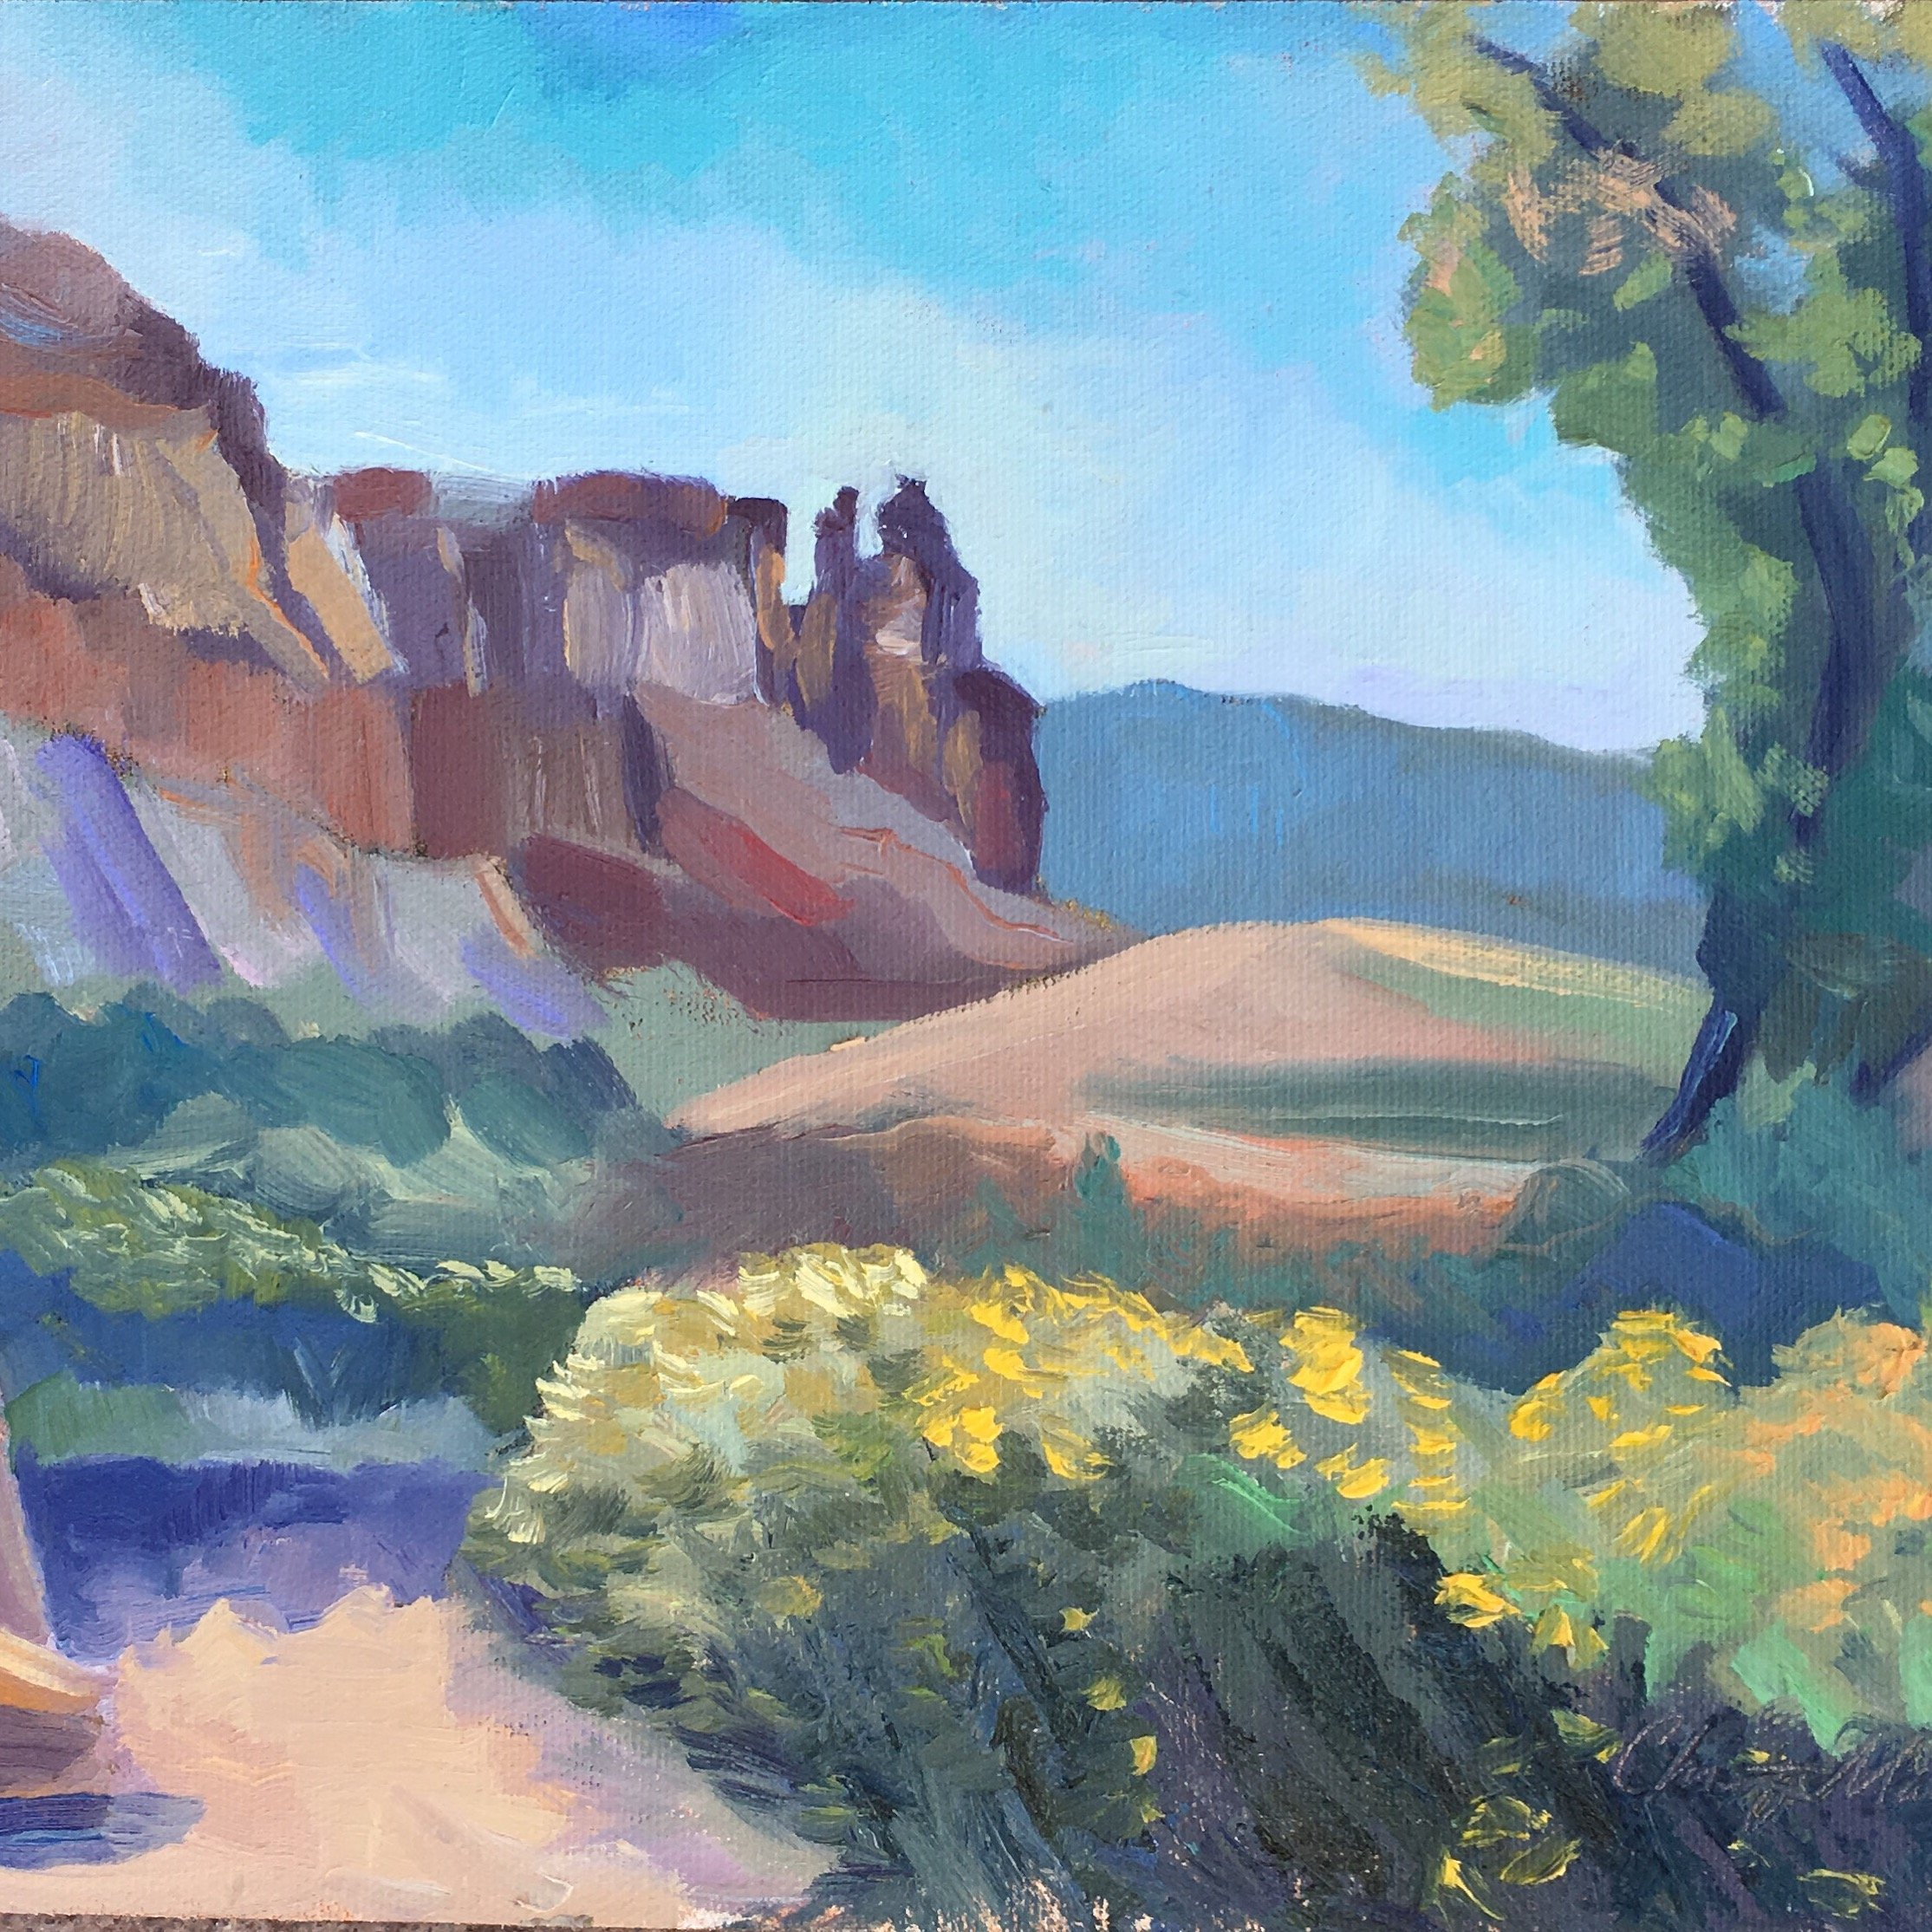 9x12, oil on panel, Ghost Ranch, New Mexico